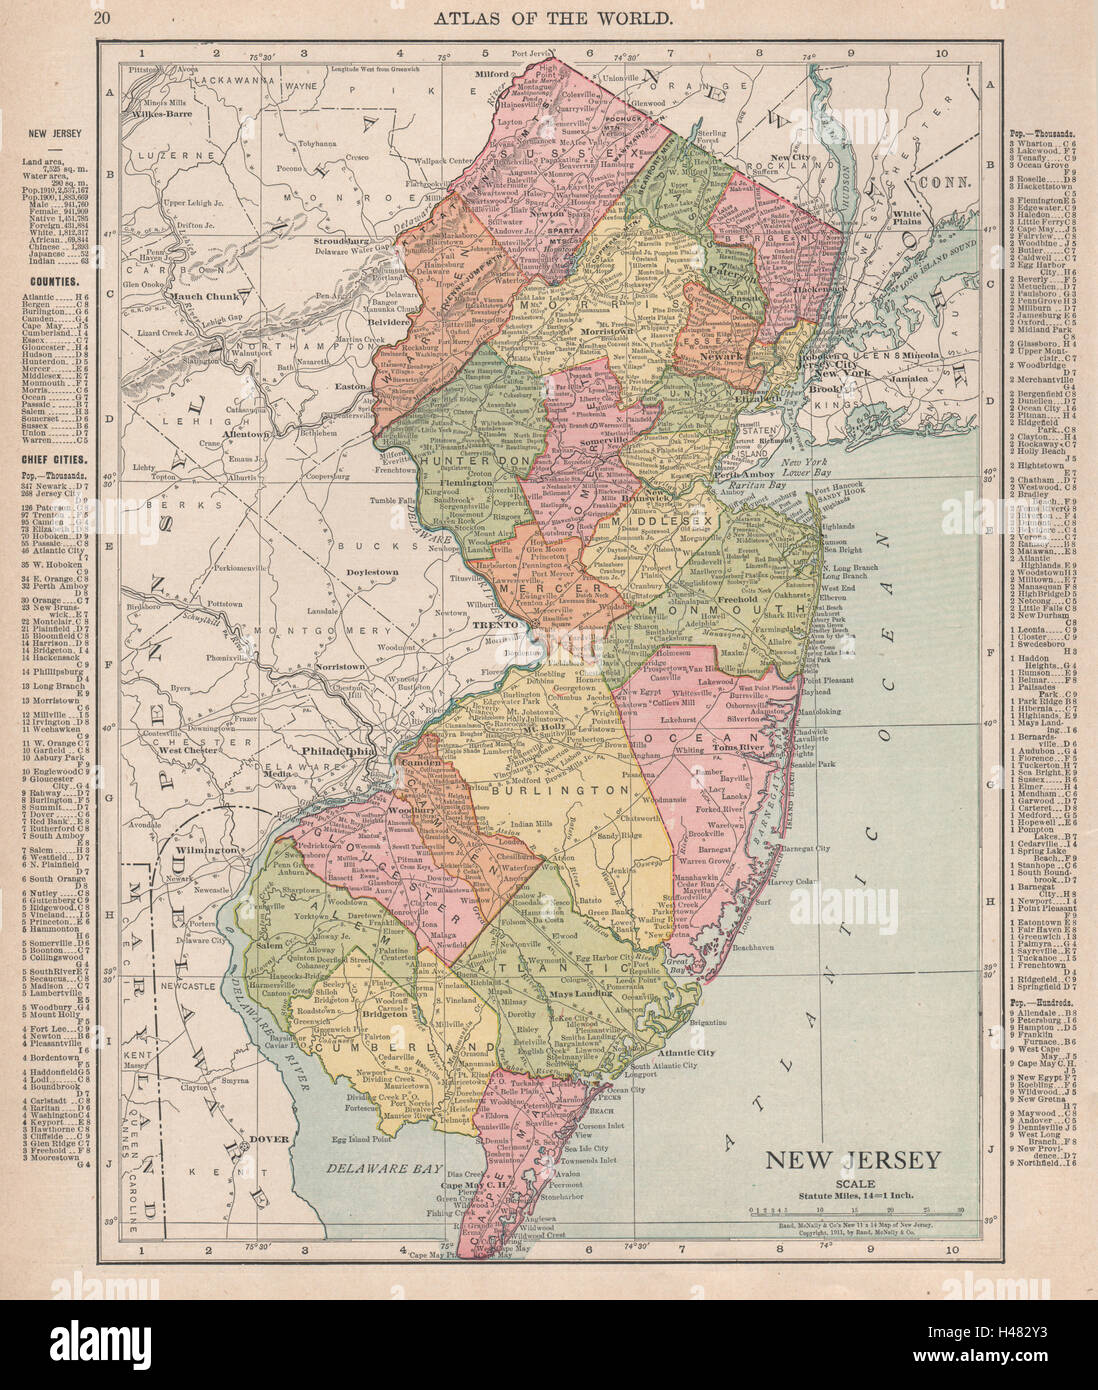 New Jersey State Map Showing Counties RAND MCNALLY Old - Nj state map with cities